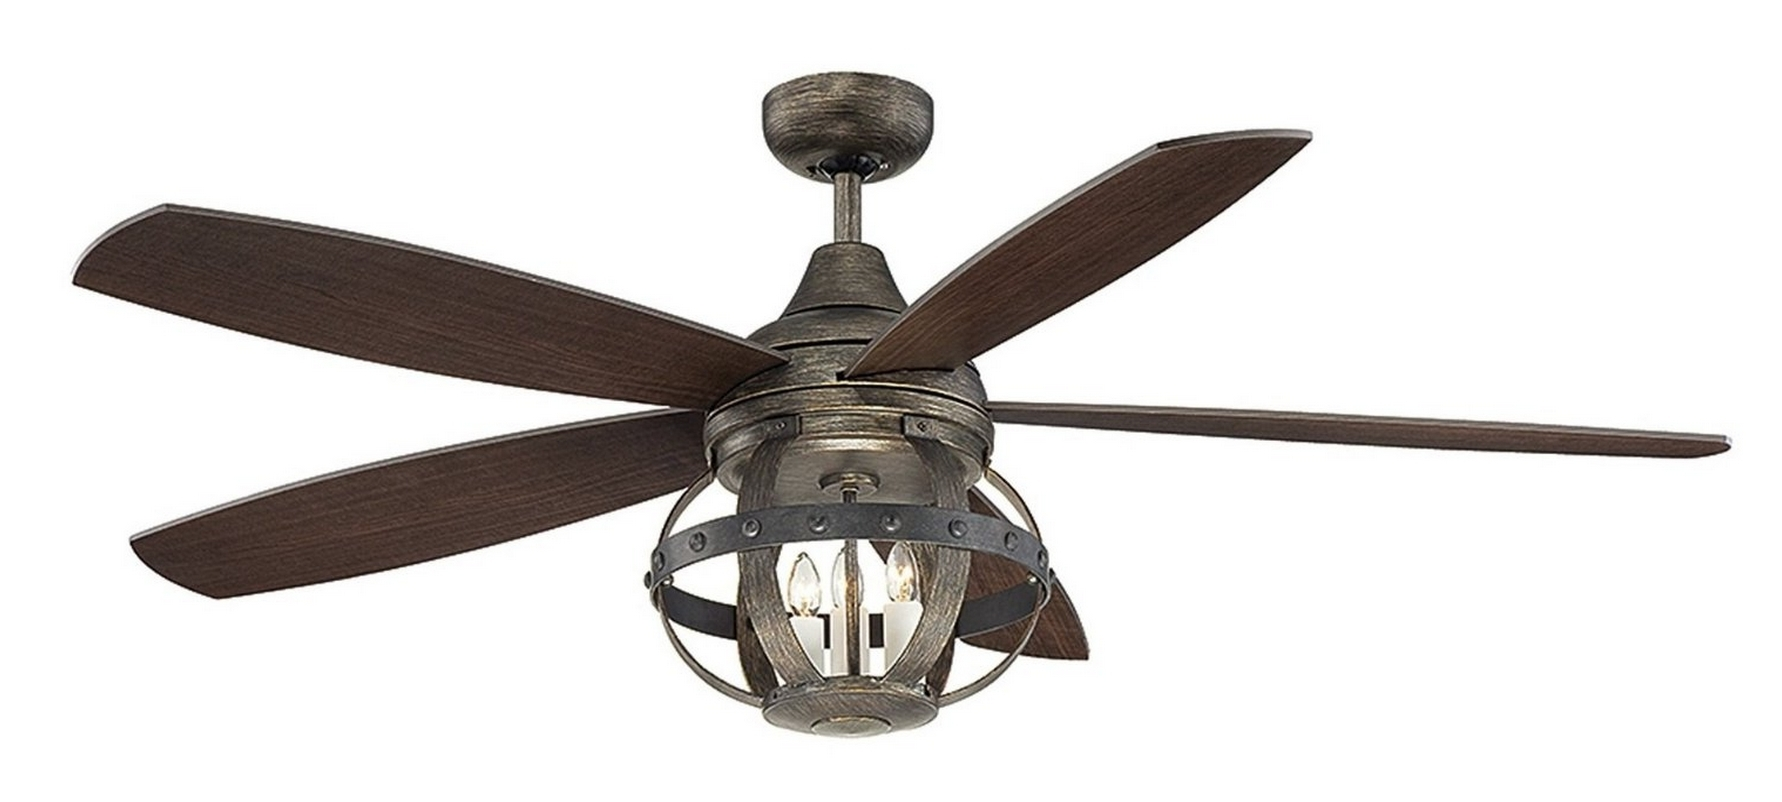 Industrial Outdoor Ceiling Fans Throughout 2019 Industrial Outdoor Ceiling Fan With Light Industrial Outdoor Ceiling (Gallery 6 of 20)